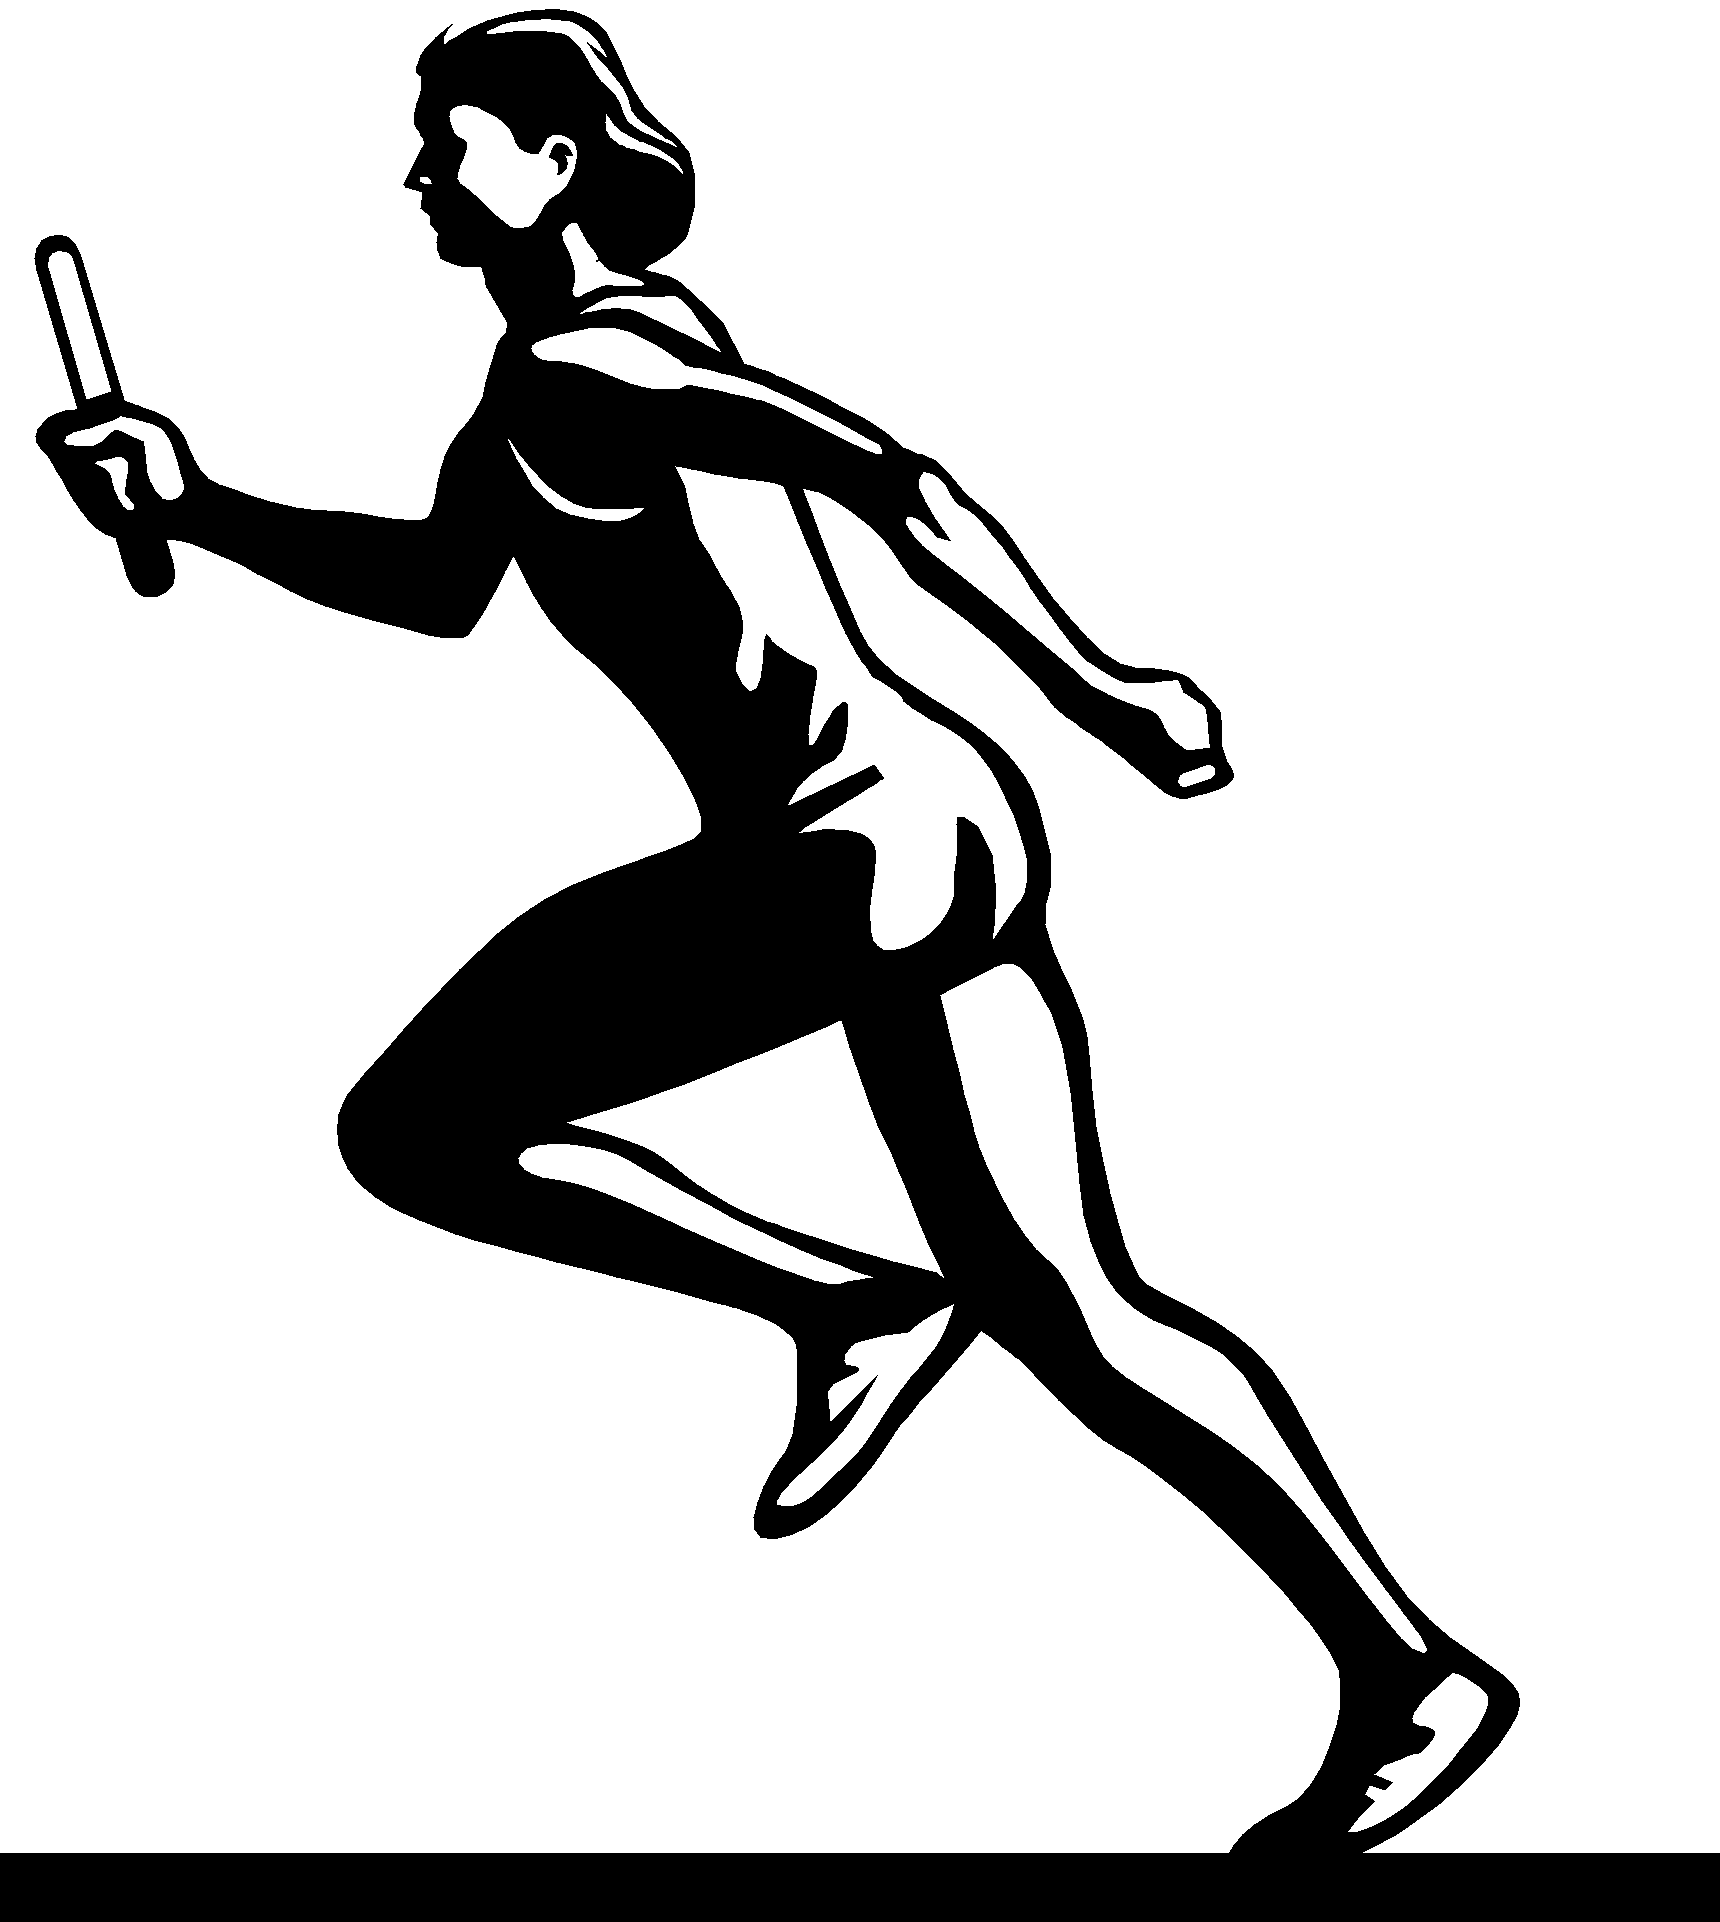 Track And Field Clip Art The Cliparts 2 Track And Field Clip Art Track Pictures